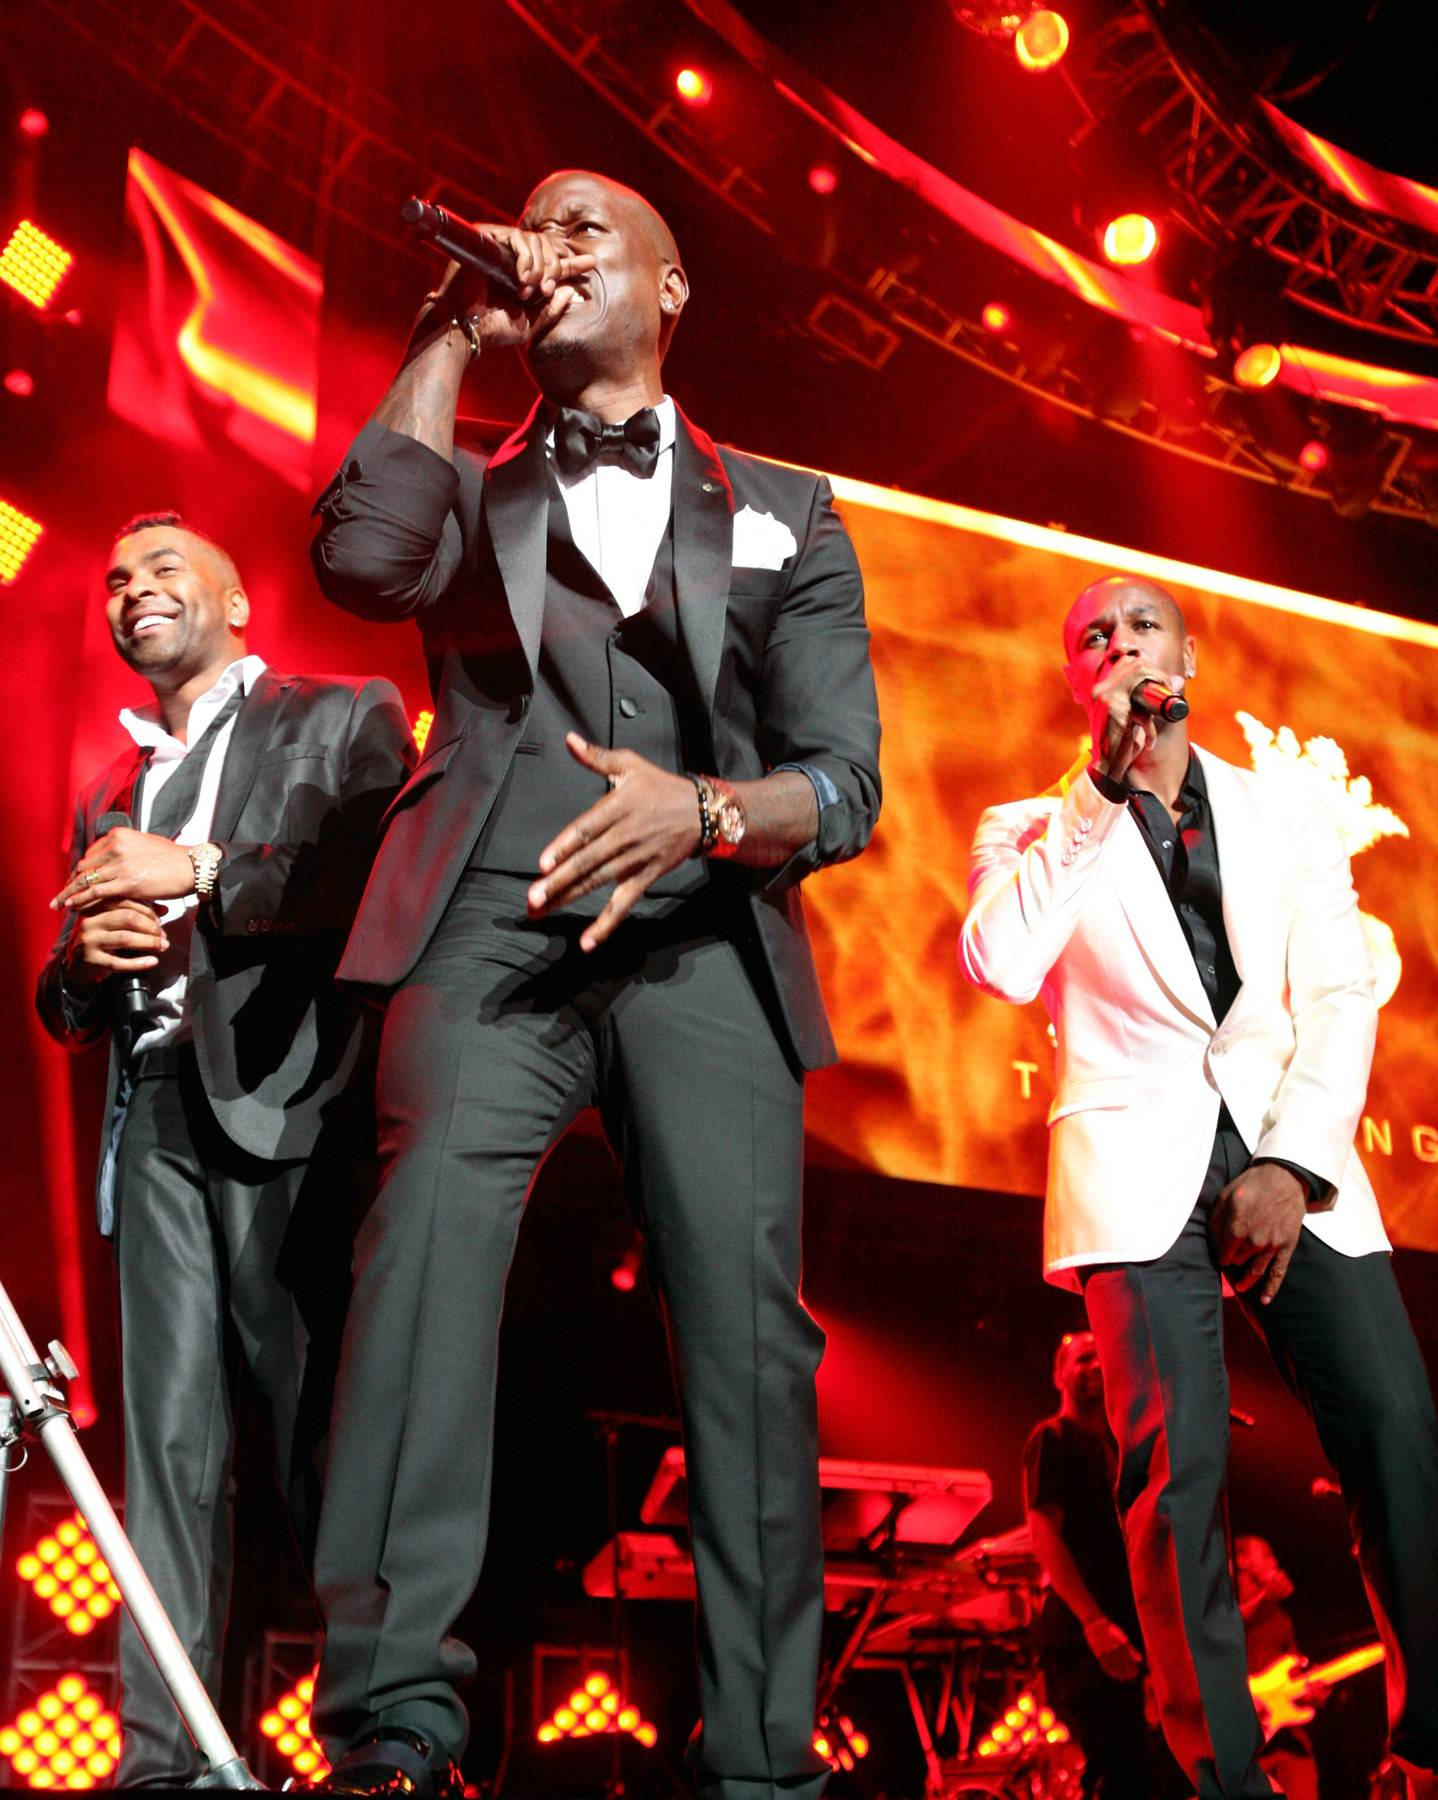 Grown and Sexy - These guys have really hit on a special music chemistry, it's no wonder their Three Kings debut was so well received.(Photo: Maury Phillips/BET/Getty Images for BET)